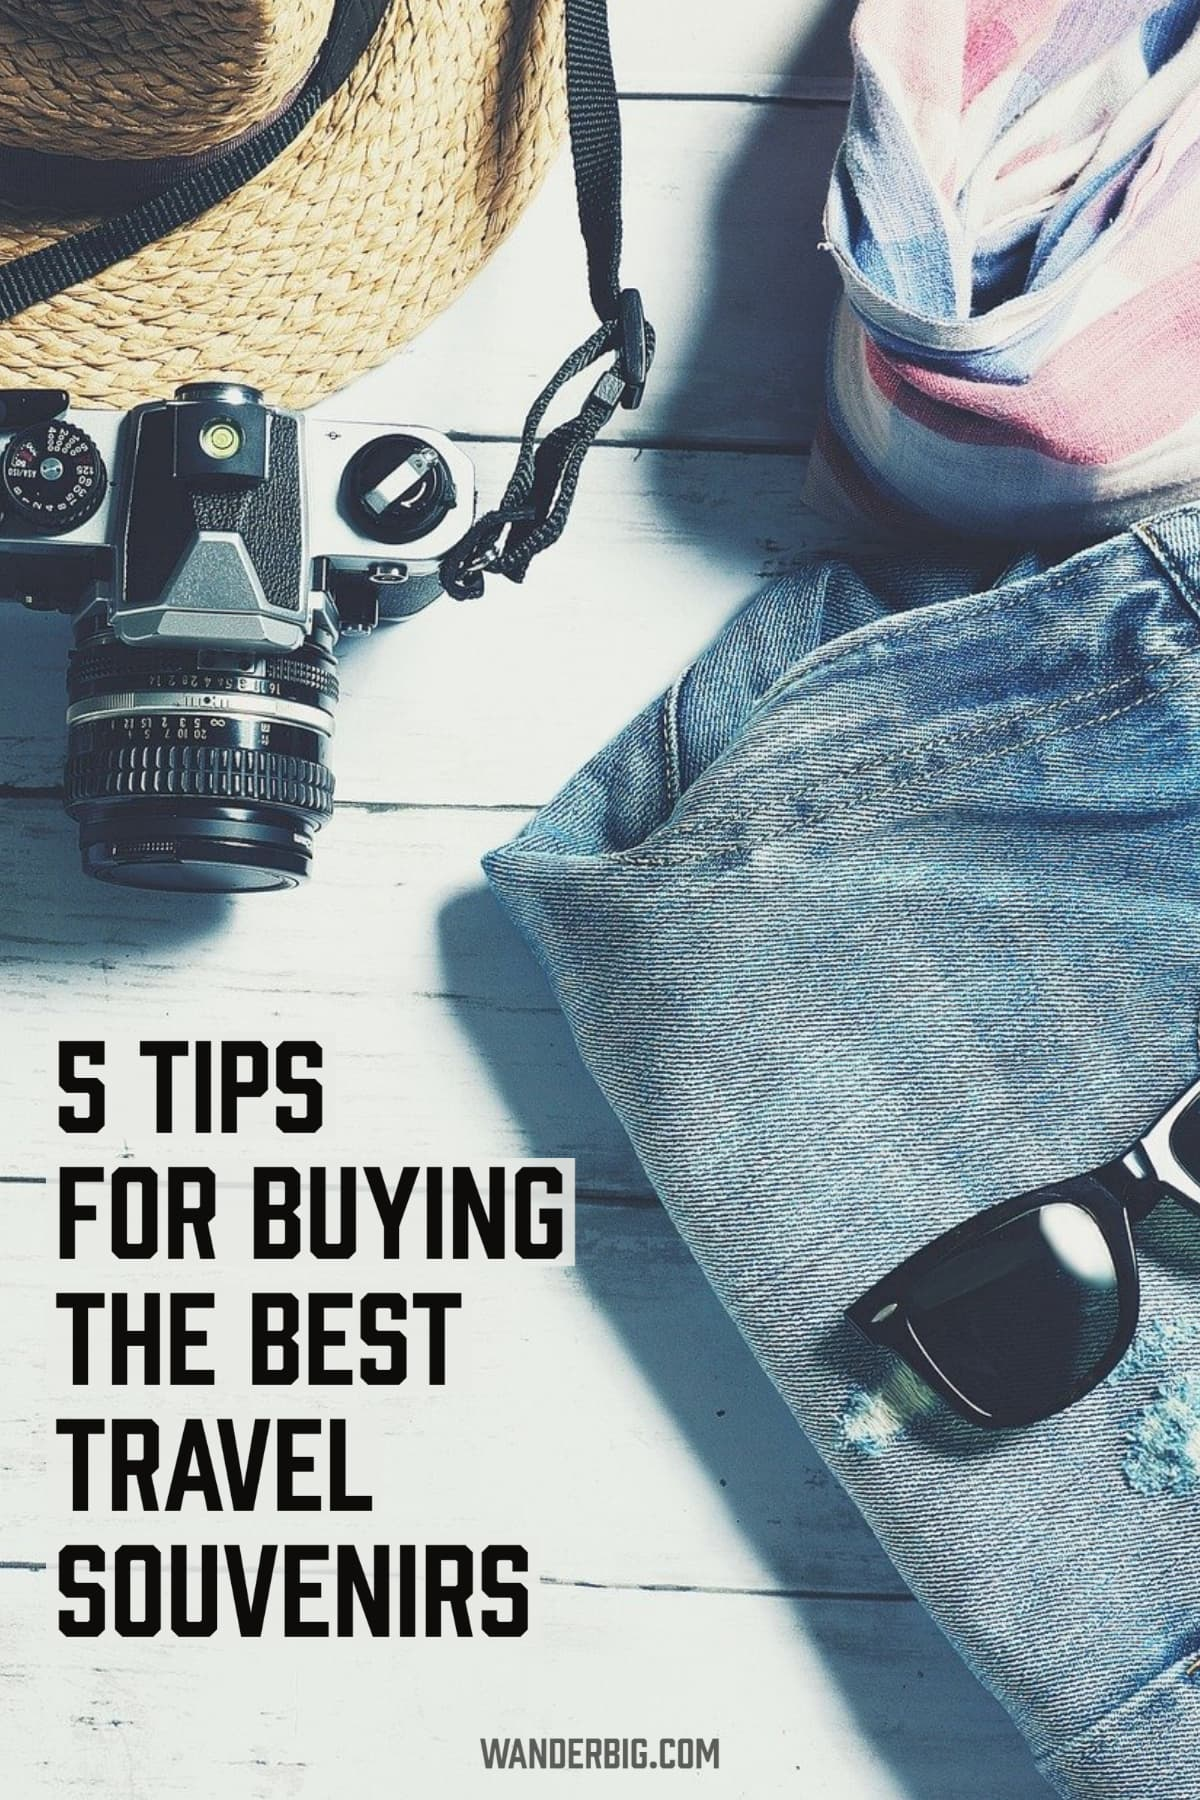 Tips for buying the best travel souvenirs, no matter where you travel.